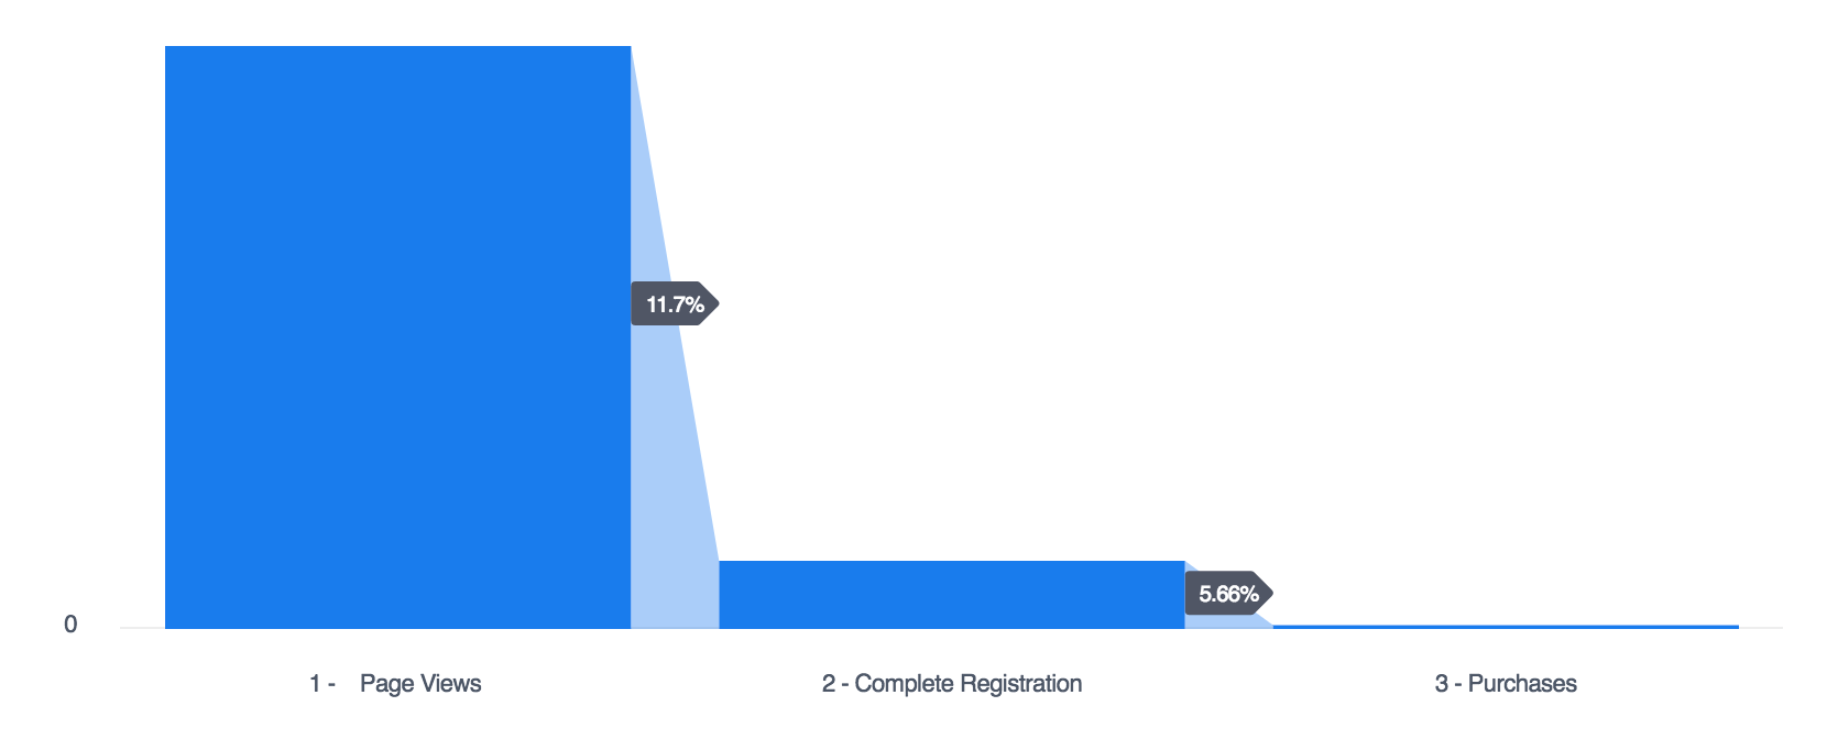 Facebook Funnel from Page Views to Registration to Purchase